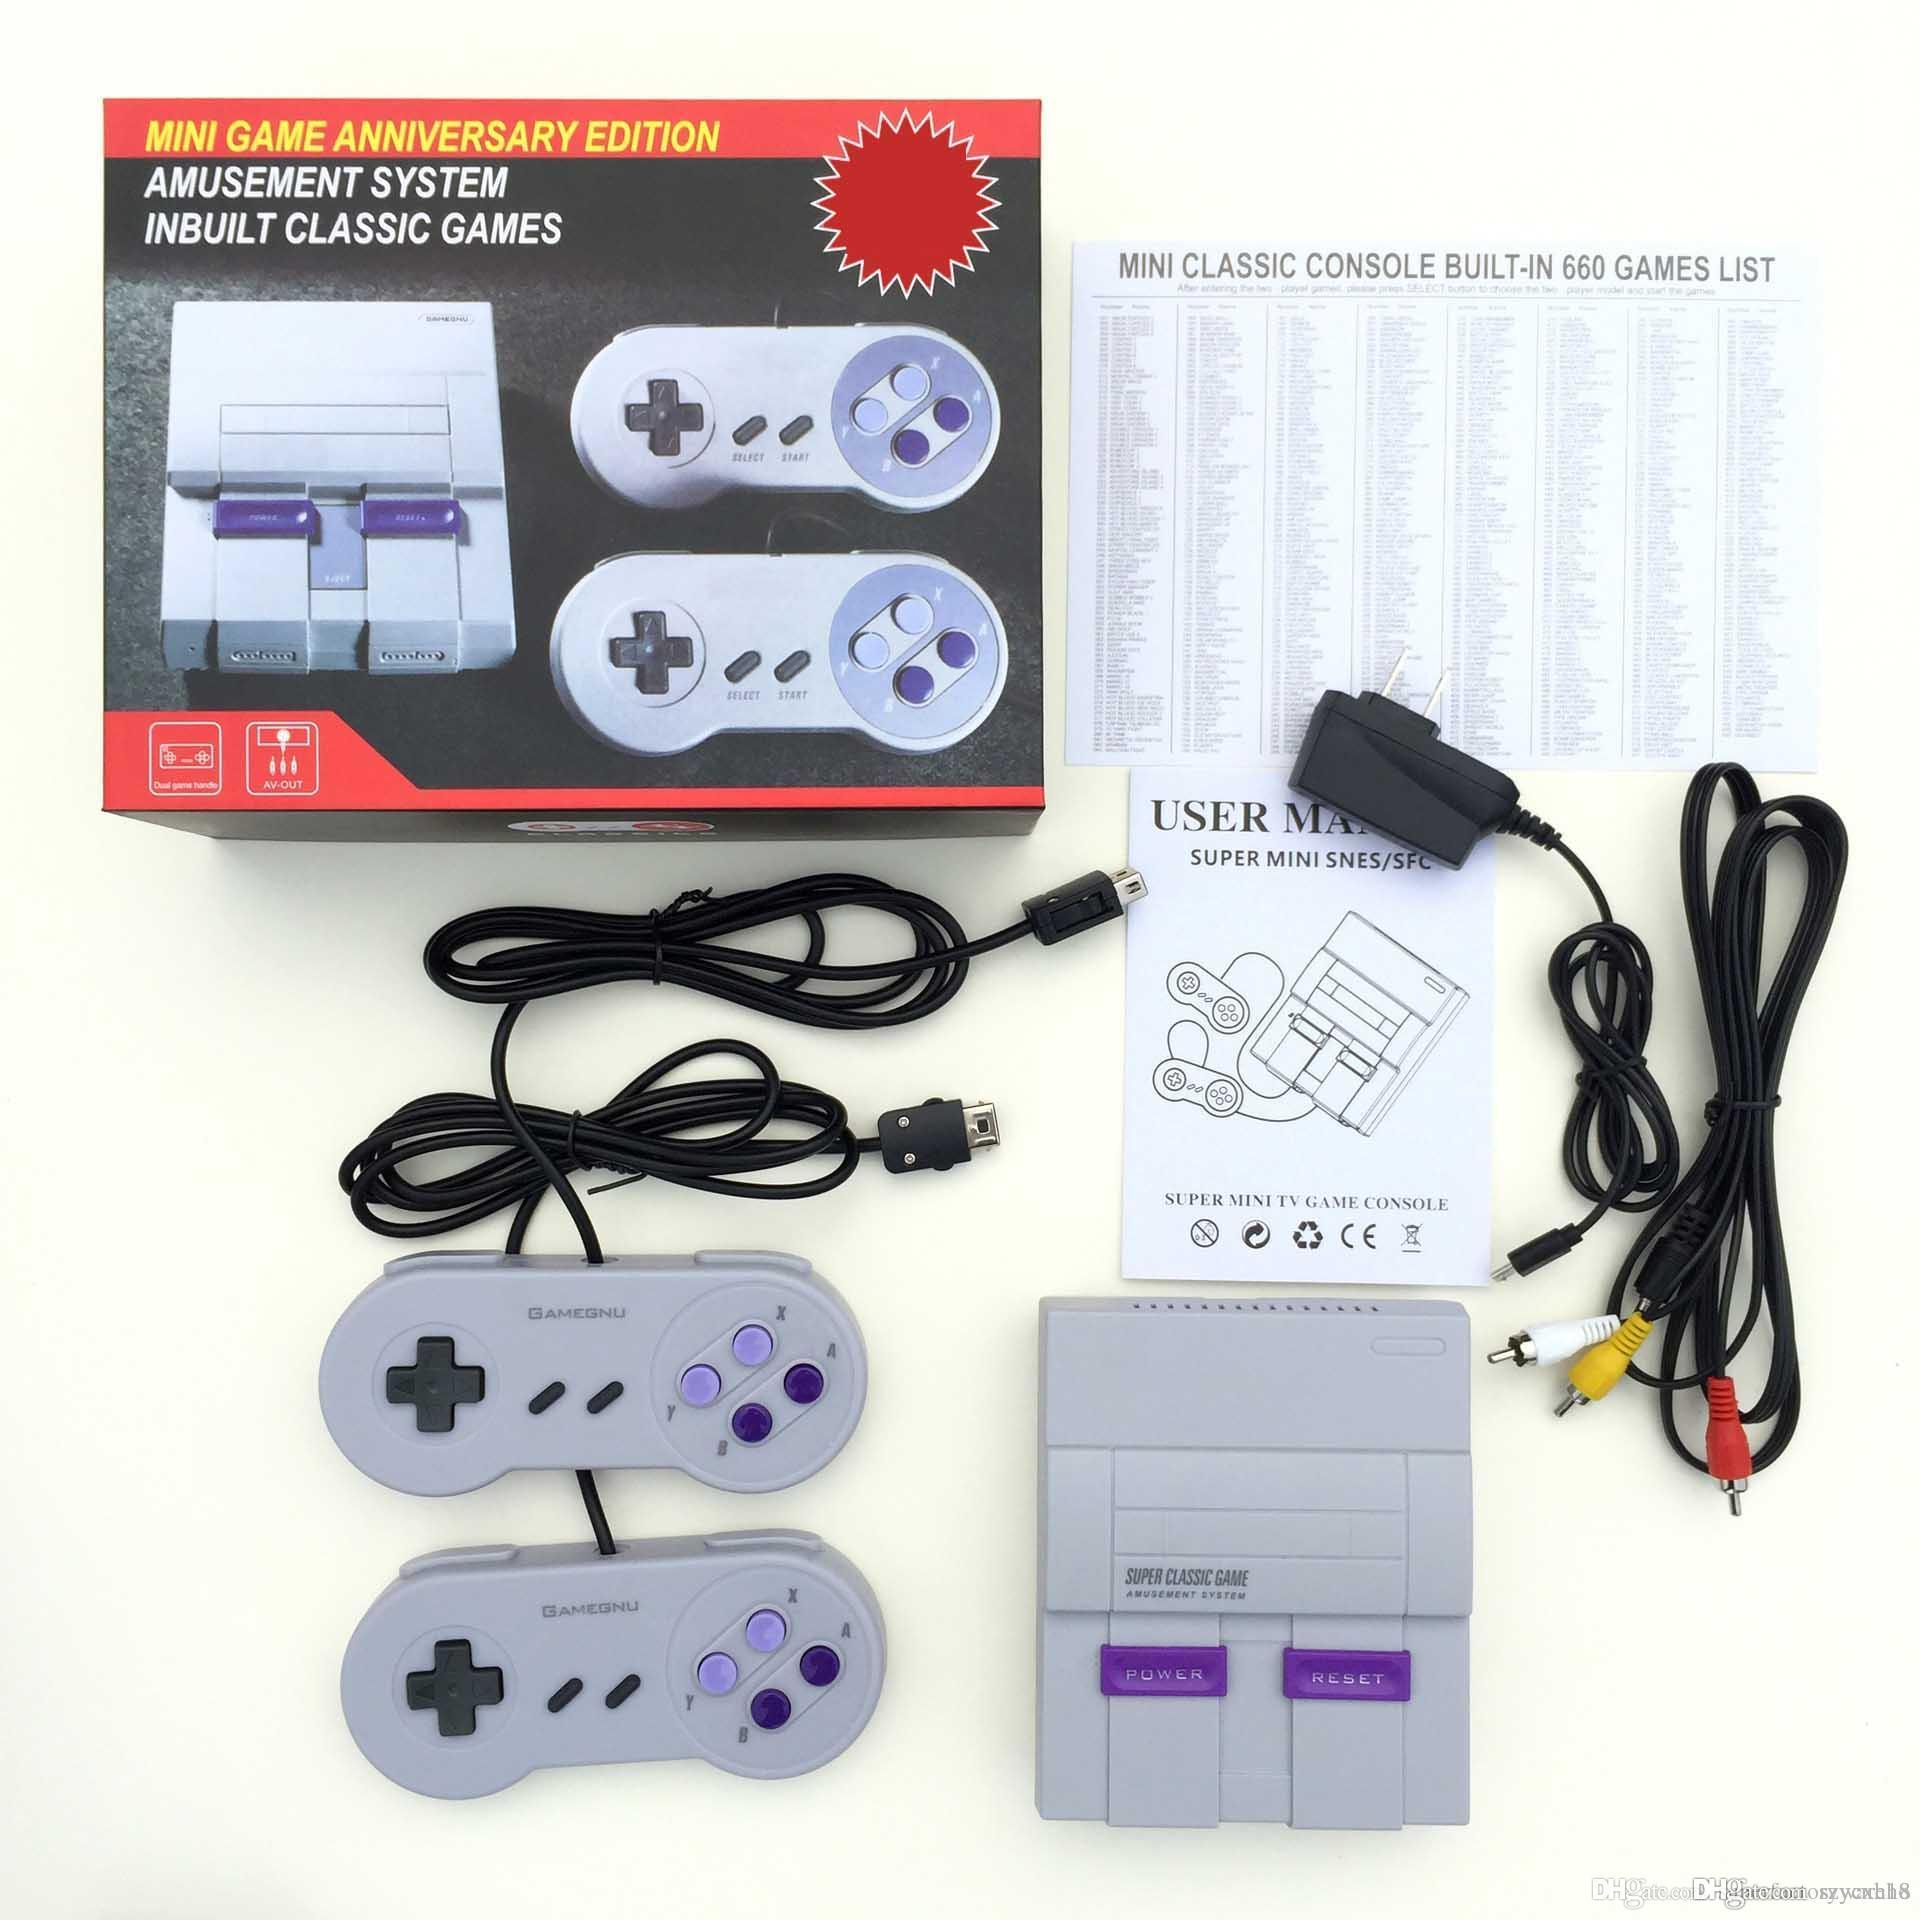 Nes SUPER CLASSIC SNES GAME TV Video Handheld Retro Classic Game Console Entertainment System Also Sale PXP3 PVP